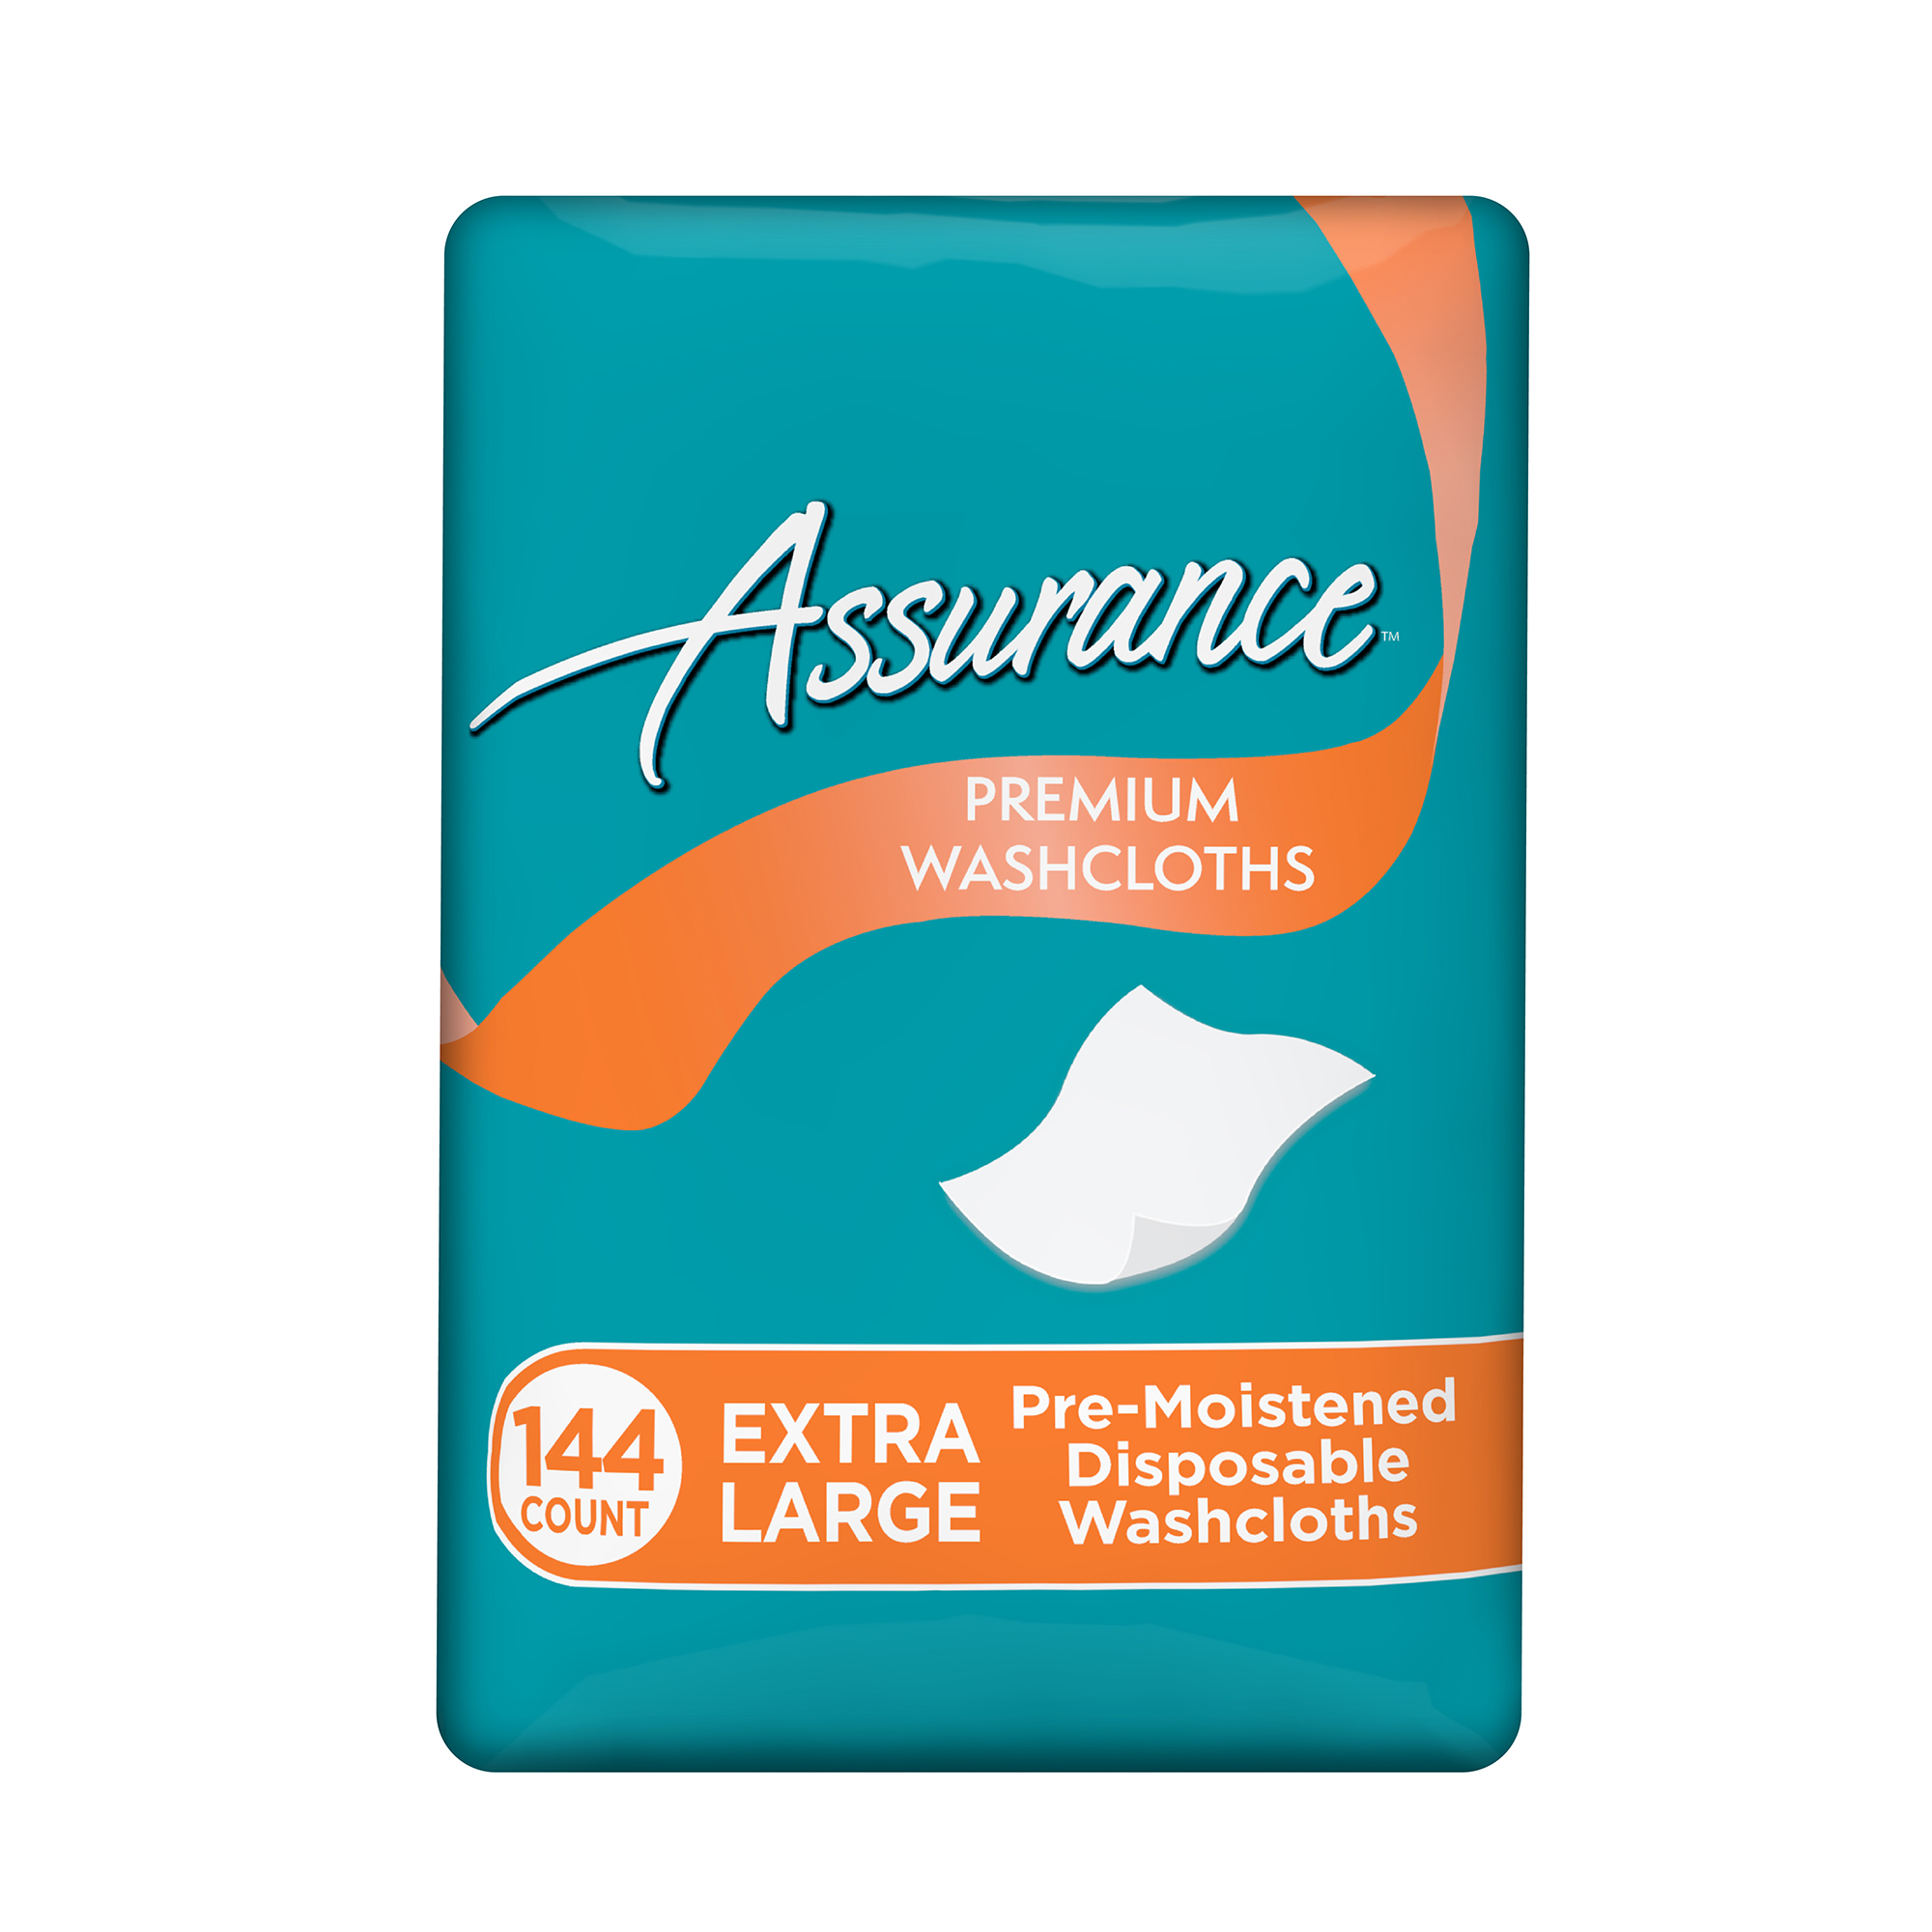 Assurance Garage Location Assurance Premium Extra Large Disposable Washcloths Xl 144 Ct